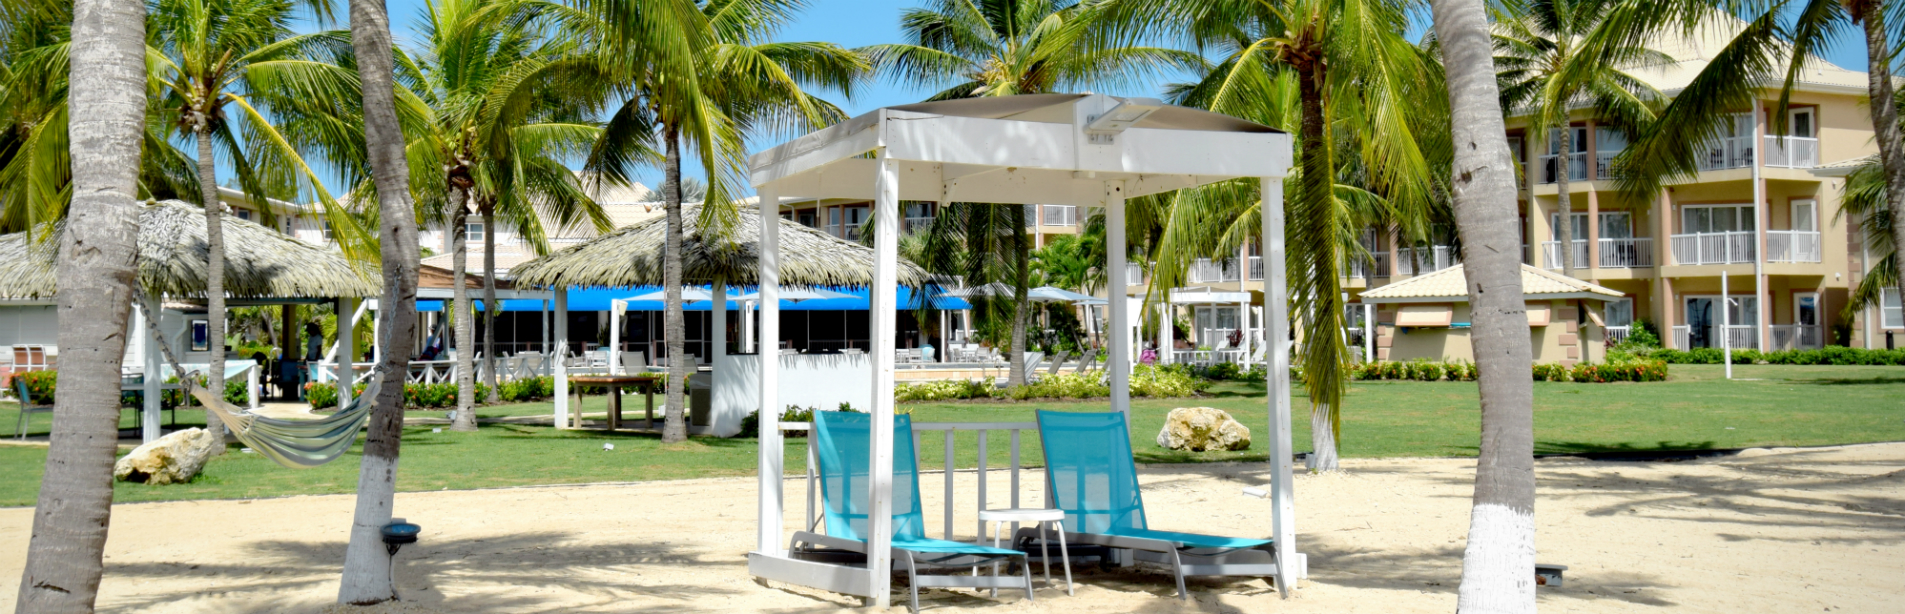 grand caymanian resort hotel